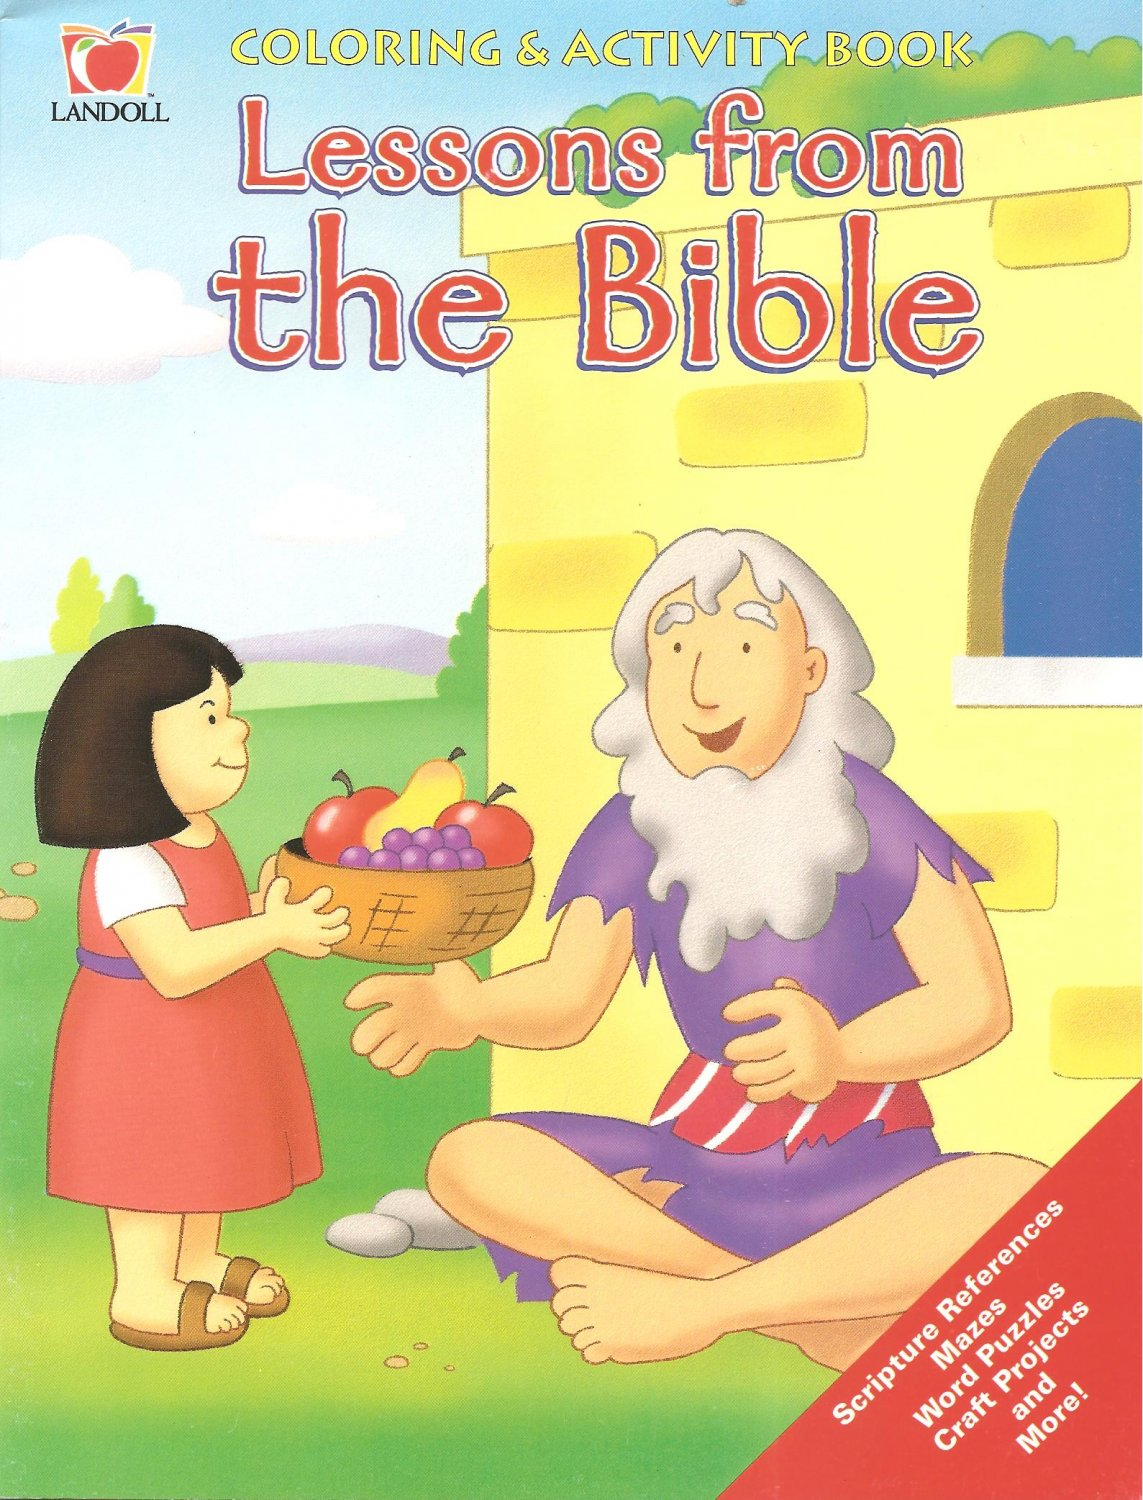 Lessons From The Bible - Coloring & Activity Book